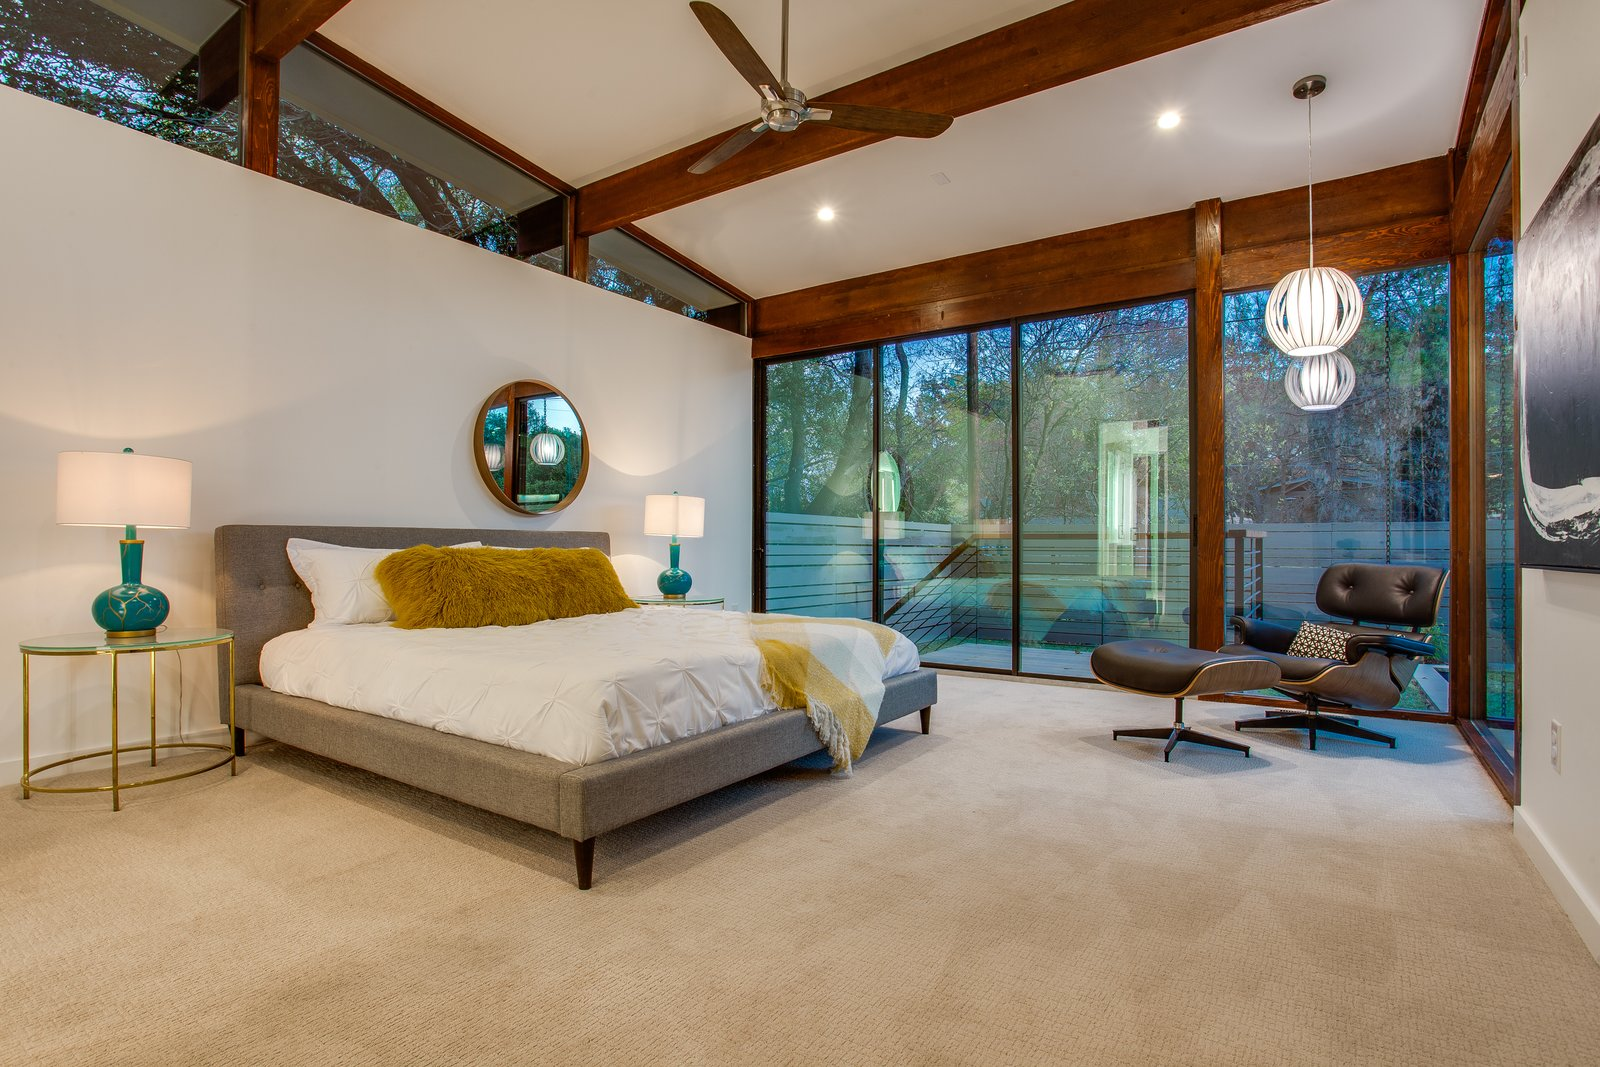 Bedroom, Bed, Chair, Pendant Lighting, Ceiling Lighting, and Recessed Lighting  1963 Post and Beam Mid Century Modern by Tavis Westbrook